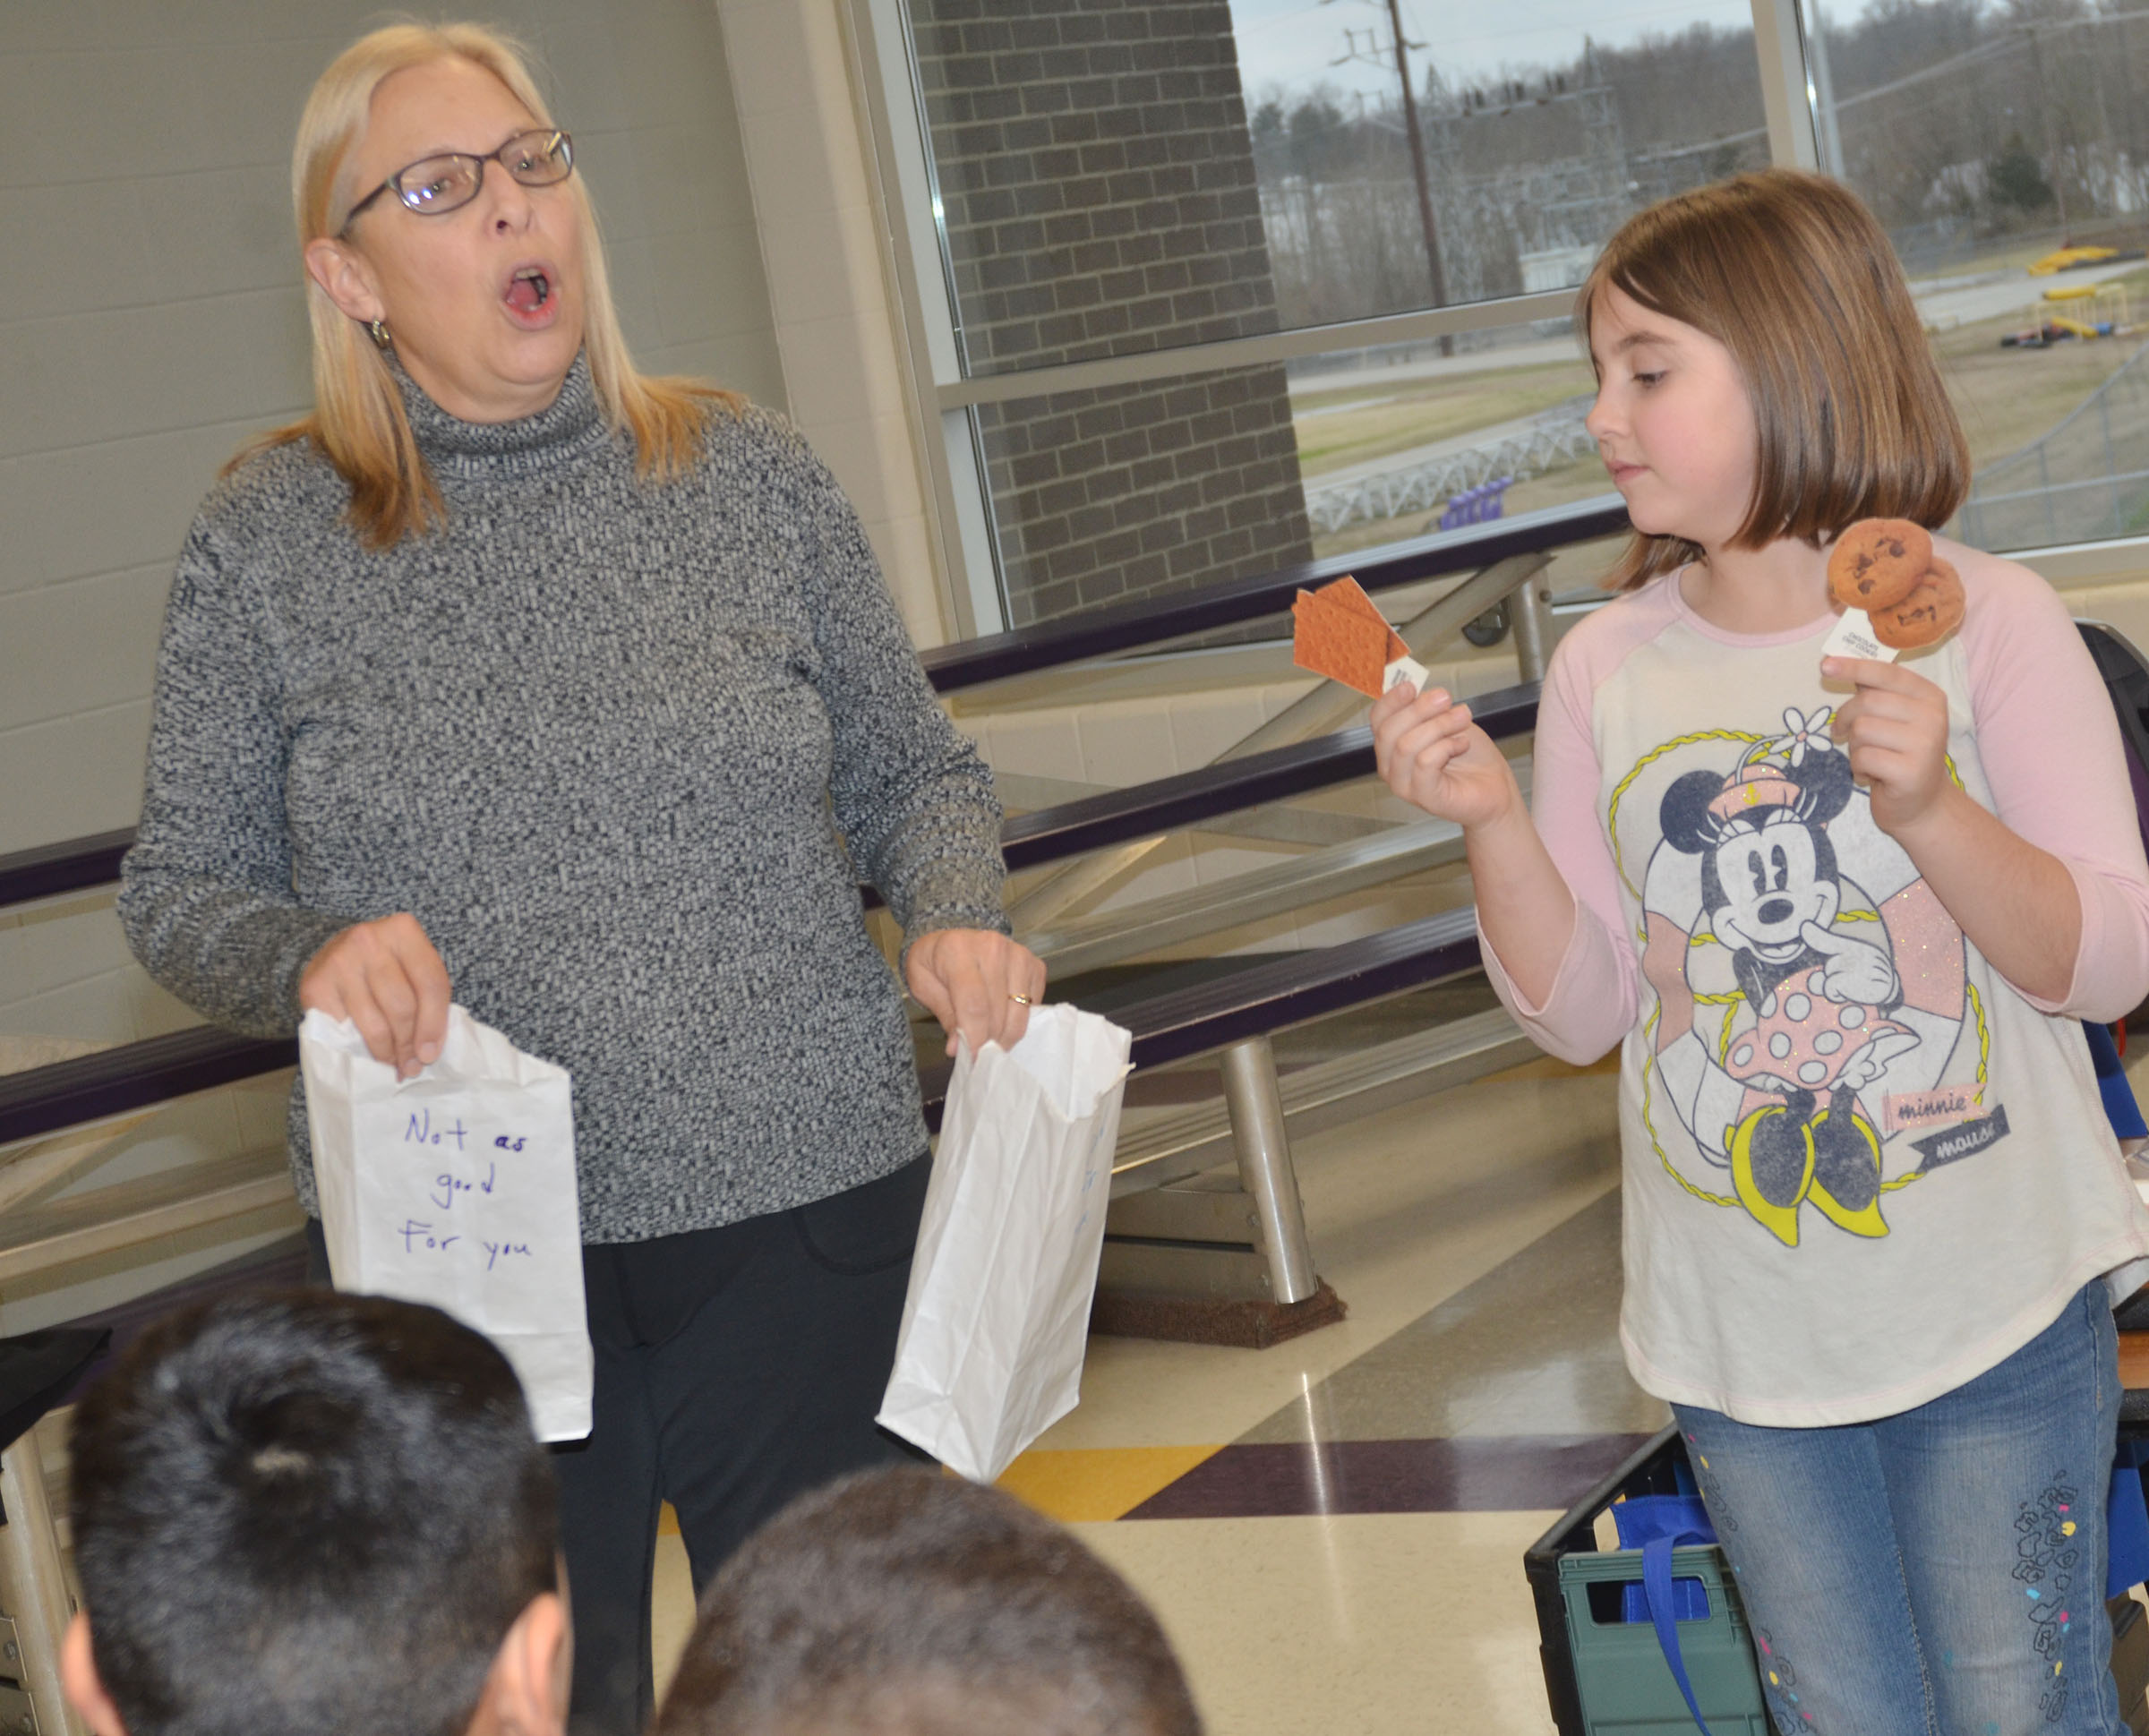 CES third-grader Adrianna Garvin and Angie Freeman, expanded foods and nutrition program assistant at Taylor County Extension Office, ask which is healthier, graham crackers or chocolate chip cookies.